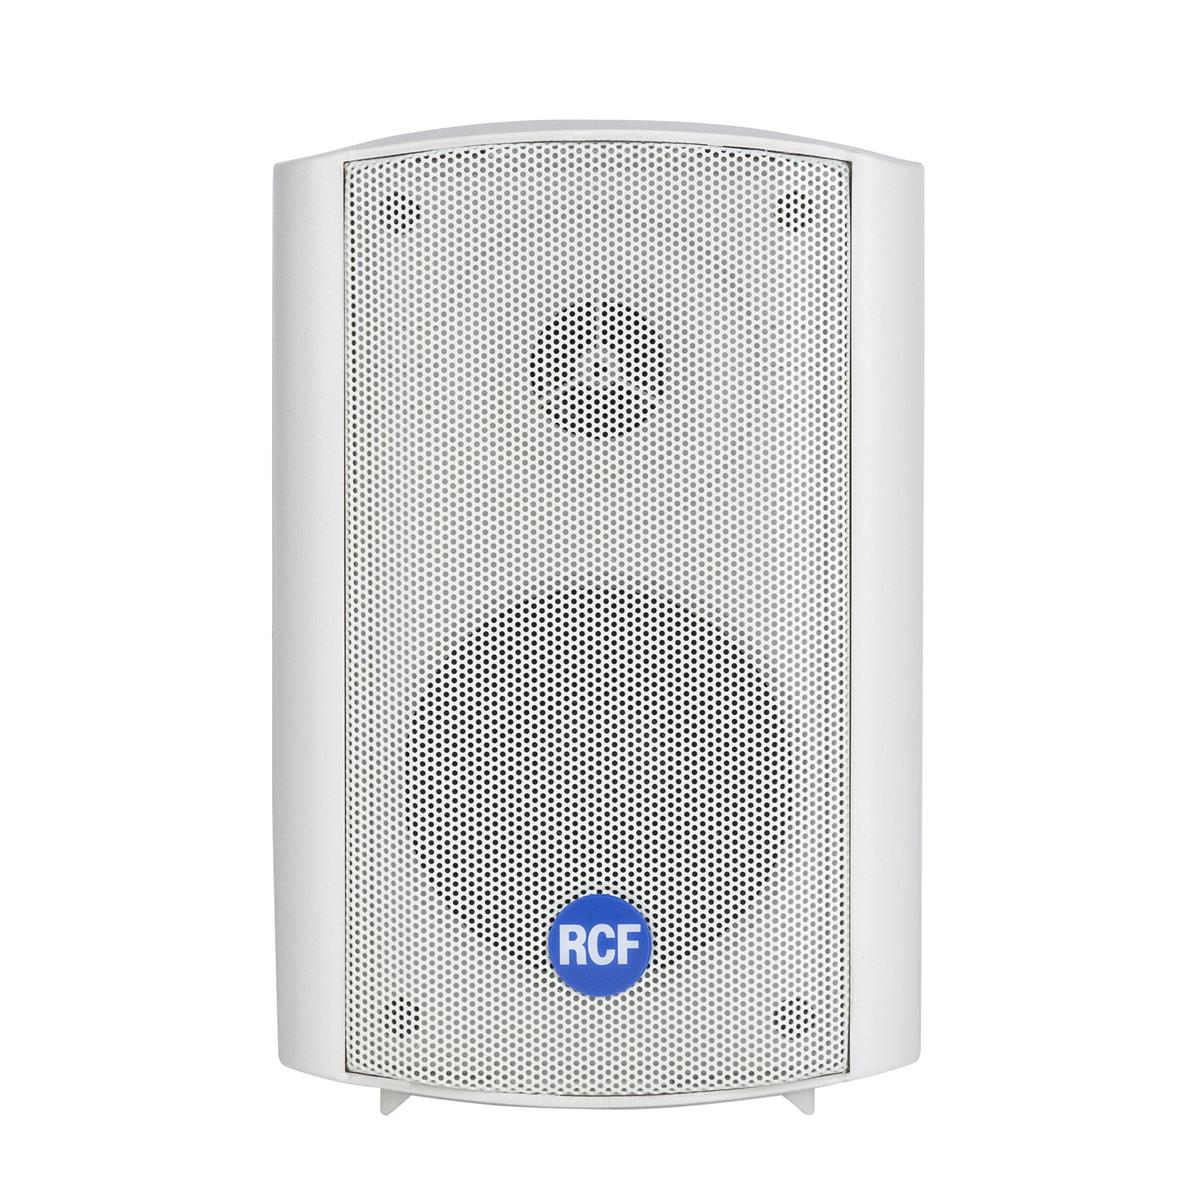 RCF Compact cabinet, 2way with 31-2in woofer, 15W with line